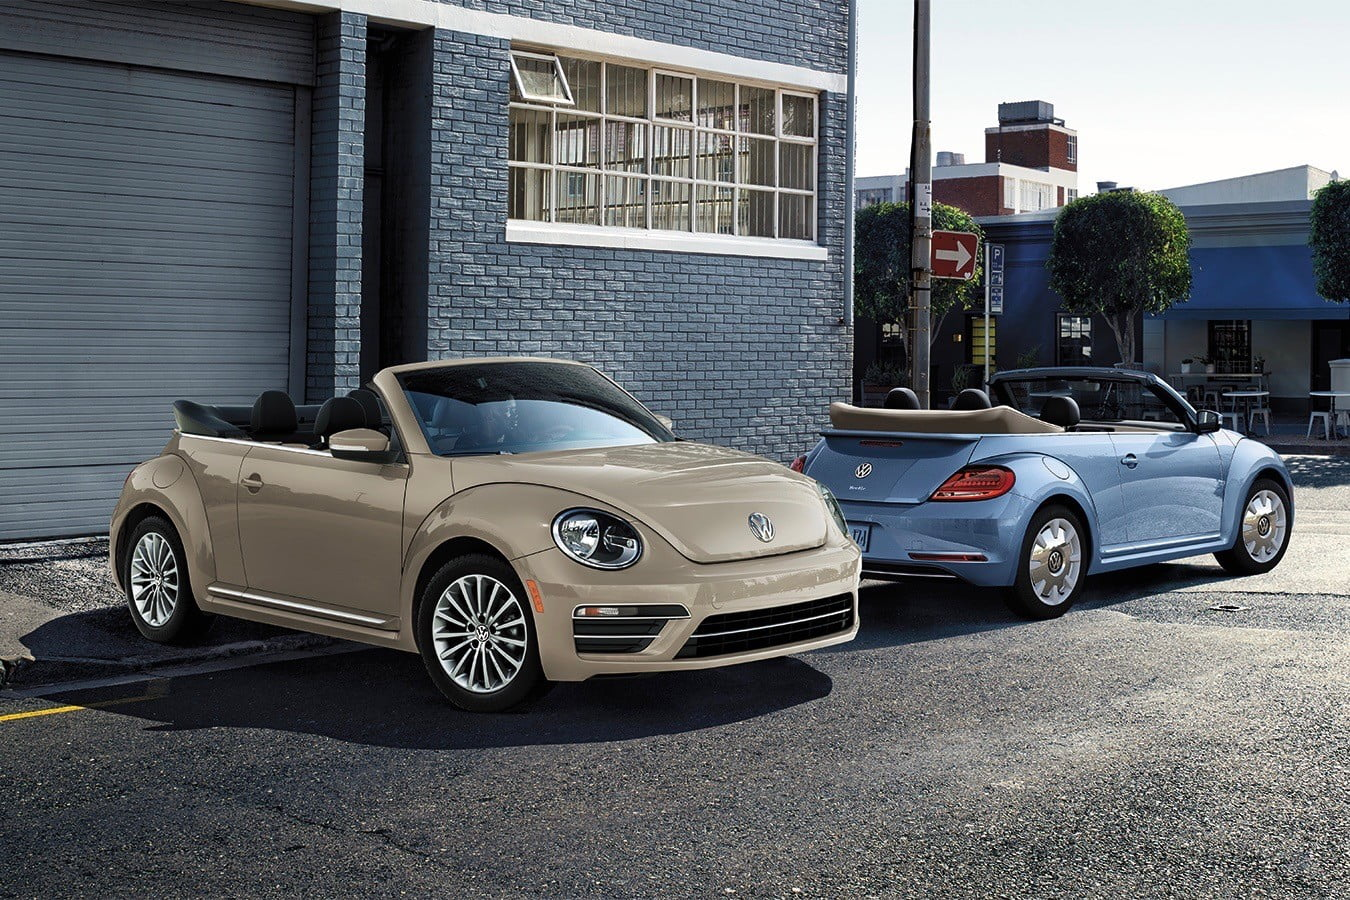 Volkswagen Finally Squashes The Beetle With 2019 Final Edition